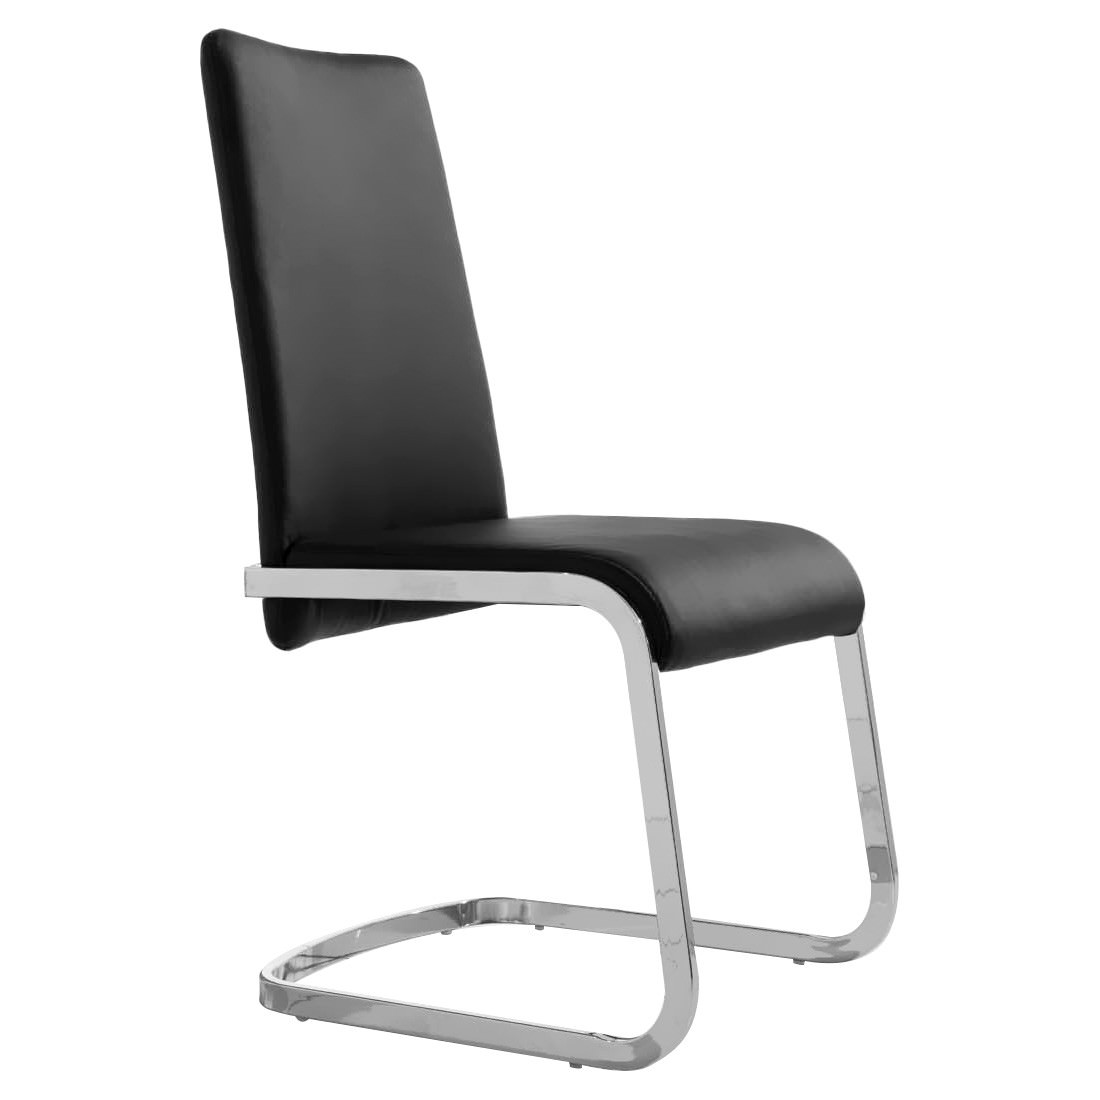 Germano PU Leather Dining Chair